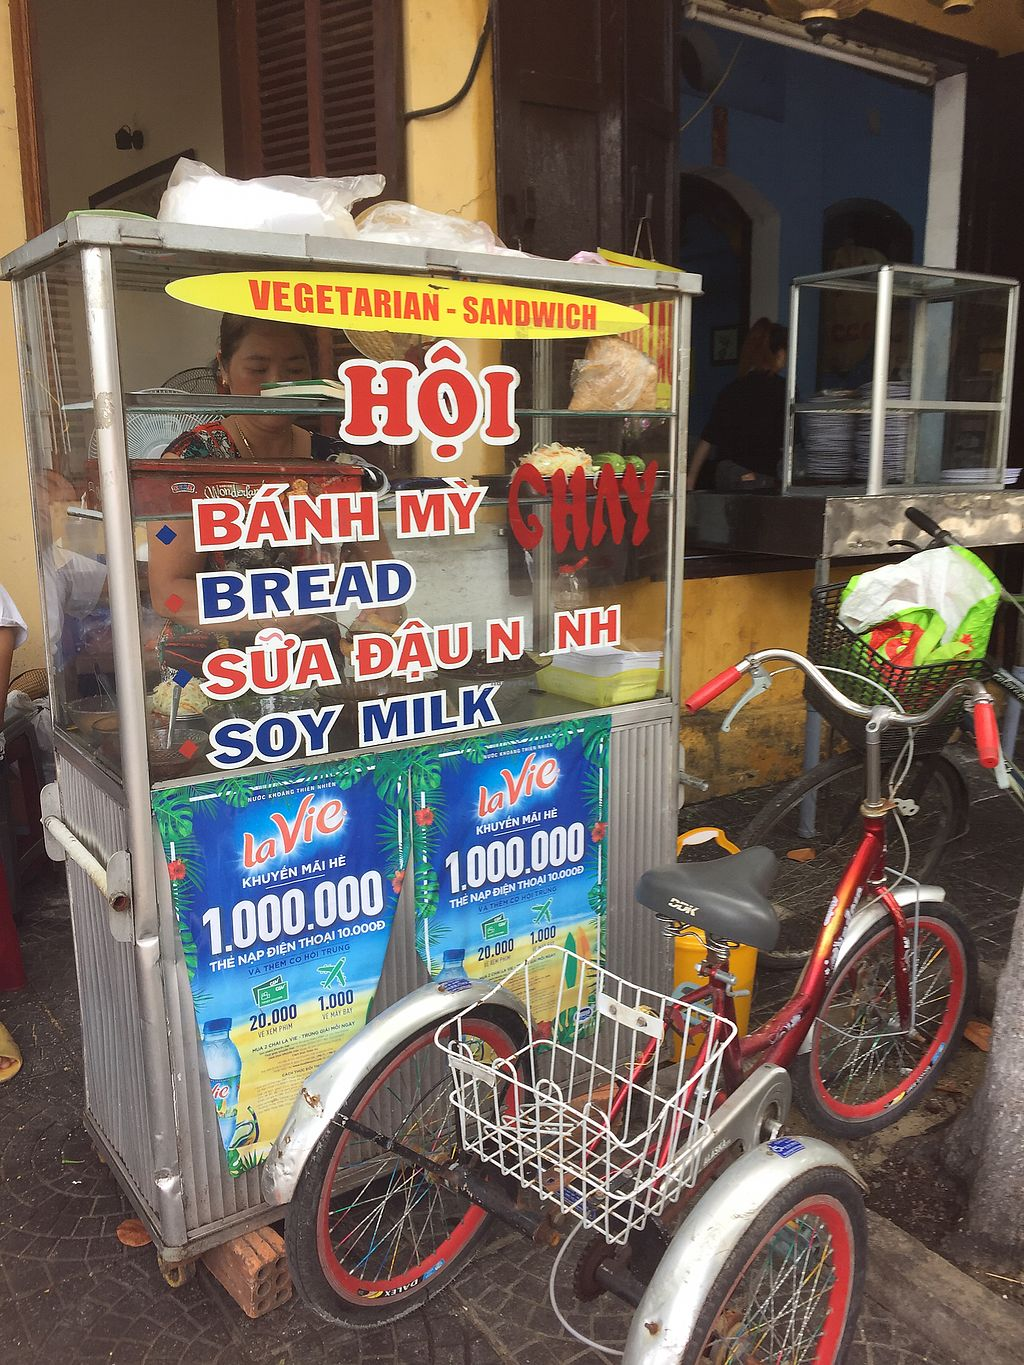 """Photo of Hoi Banh My Chay - Food Stall  by <a href=""""/members/profile/fengmanyi"""">fengmanyi</a> <br/>store front <br/> July 14, 2017  - <a href='/contact/abuse/image/81098/280141'>Report</a>"""